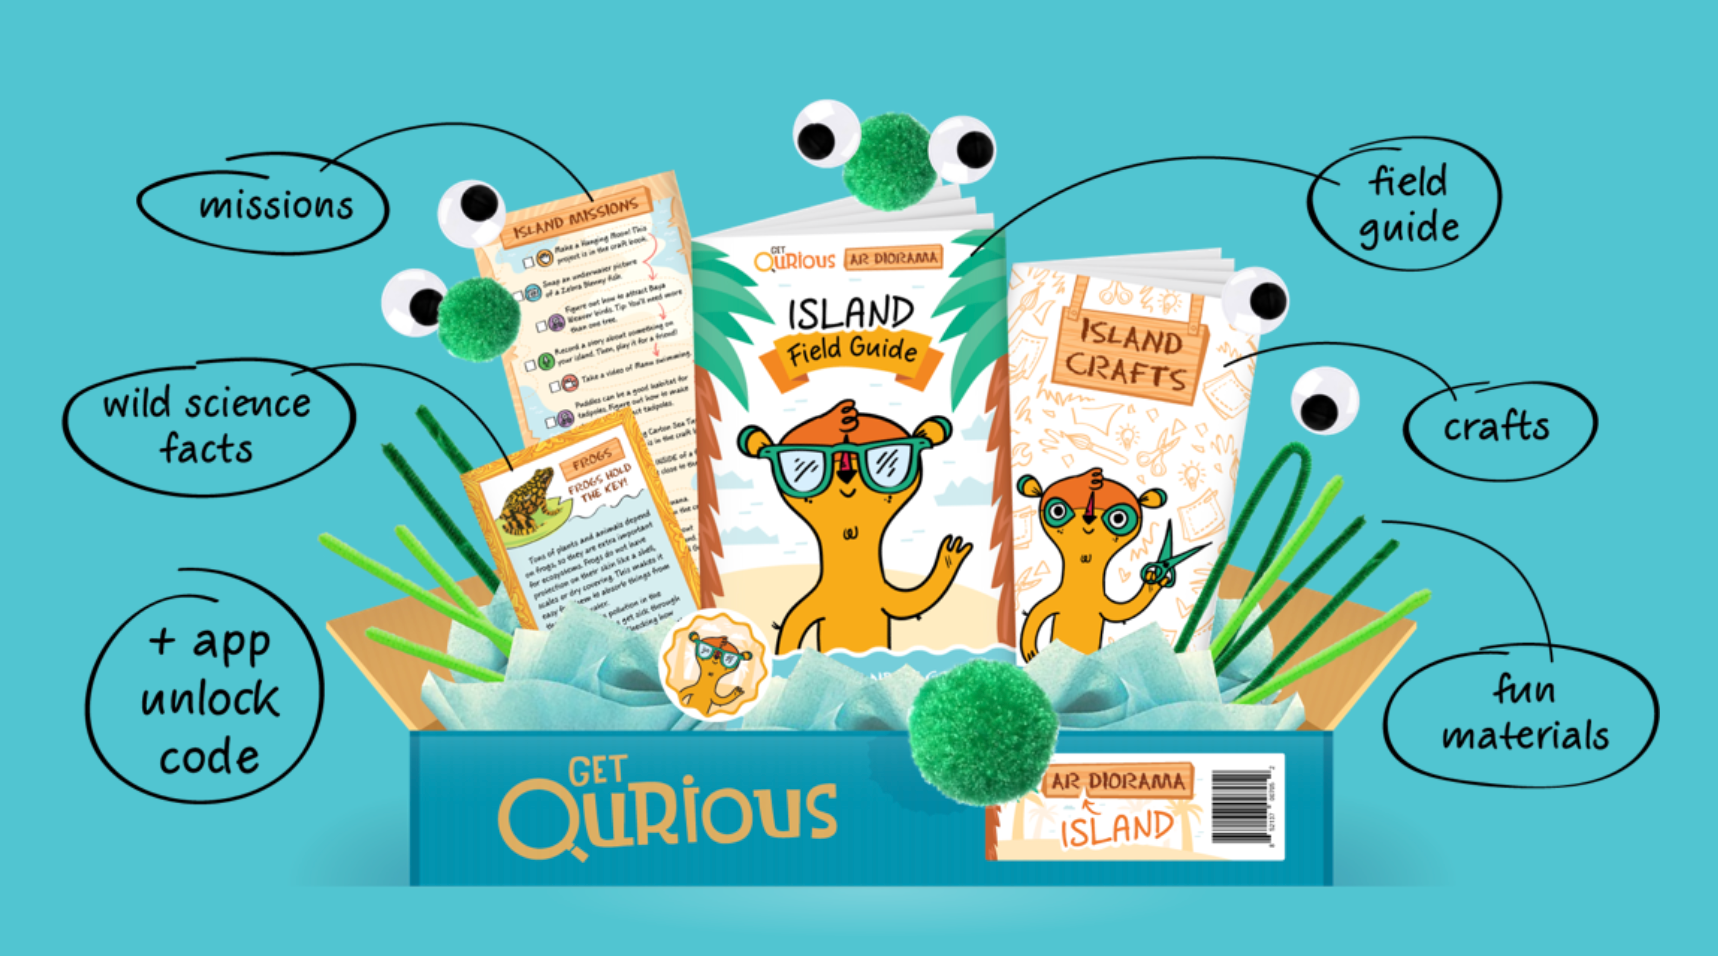 Shopify Subscription Box Launch: Get Qurious